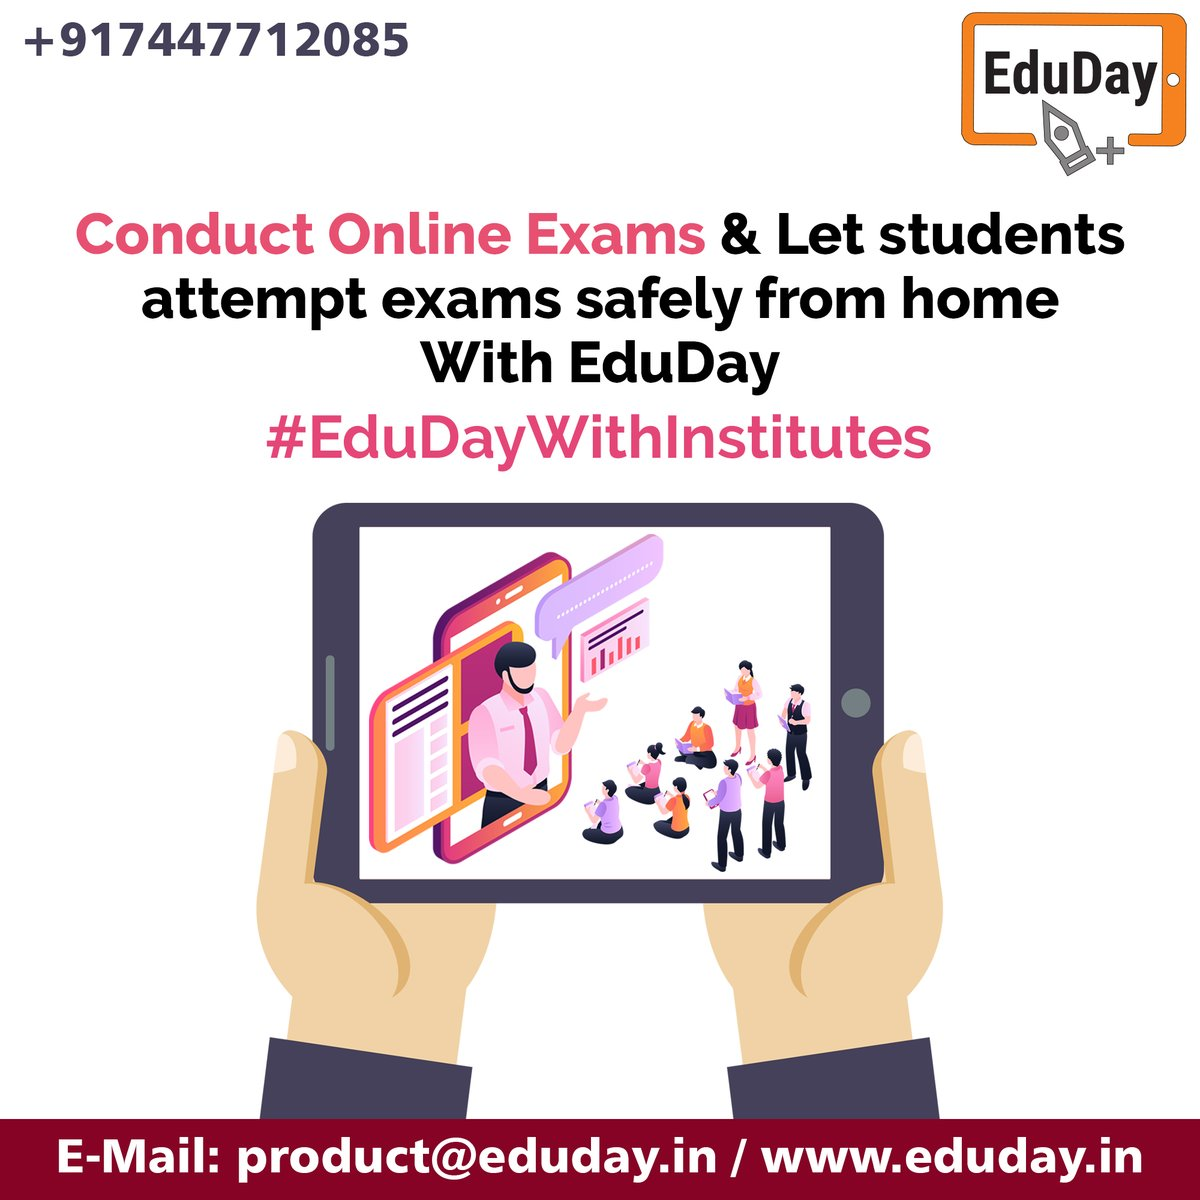 Transform Teaching, Inspire Learning and Deliver a world-class Student Experience.  Get in touch to know more:- Phone : +91 7447712085 E-Mail: product@eduday.in visit:- http://www.eduday.in  #eduday #edudayindia #pune #india #tab #tablets #CoachingInstitute #Coachingclassesspic.twitter.com/CxY6rqmWyv